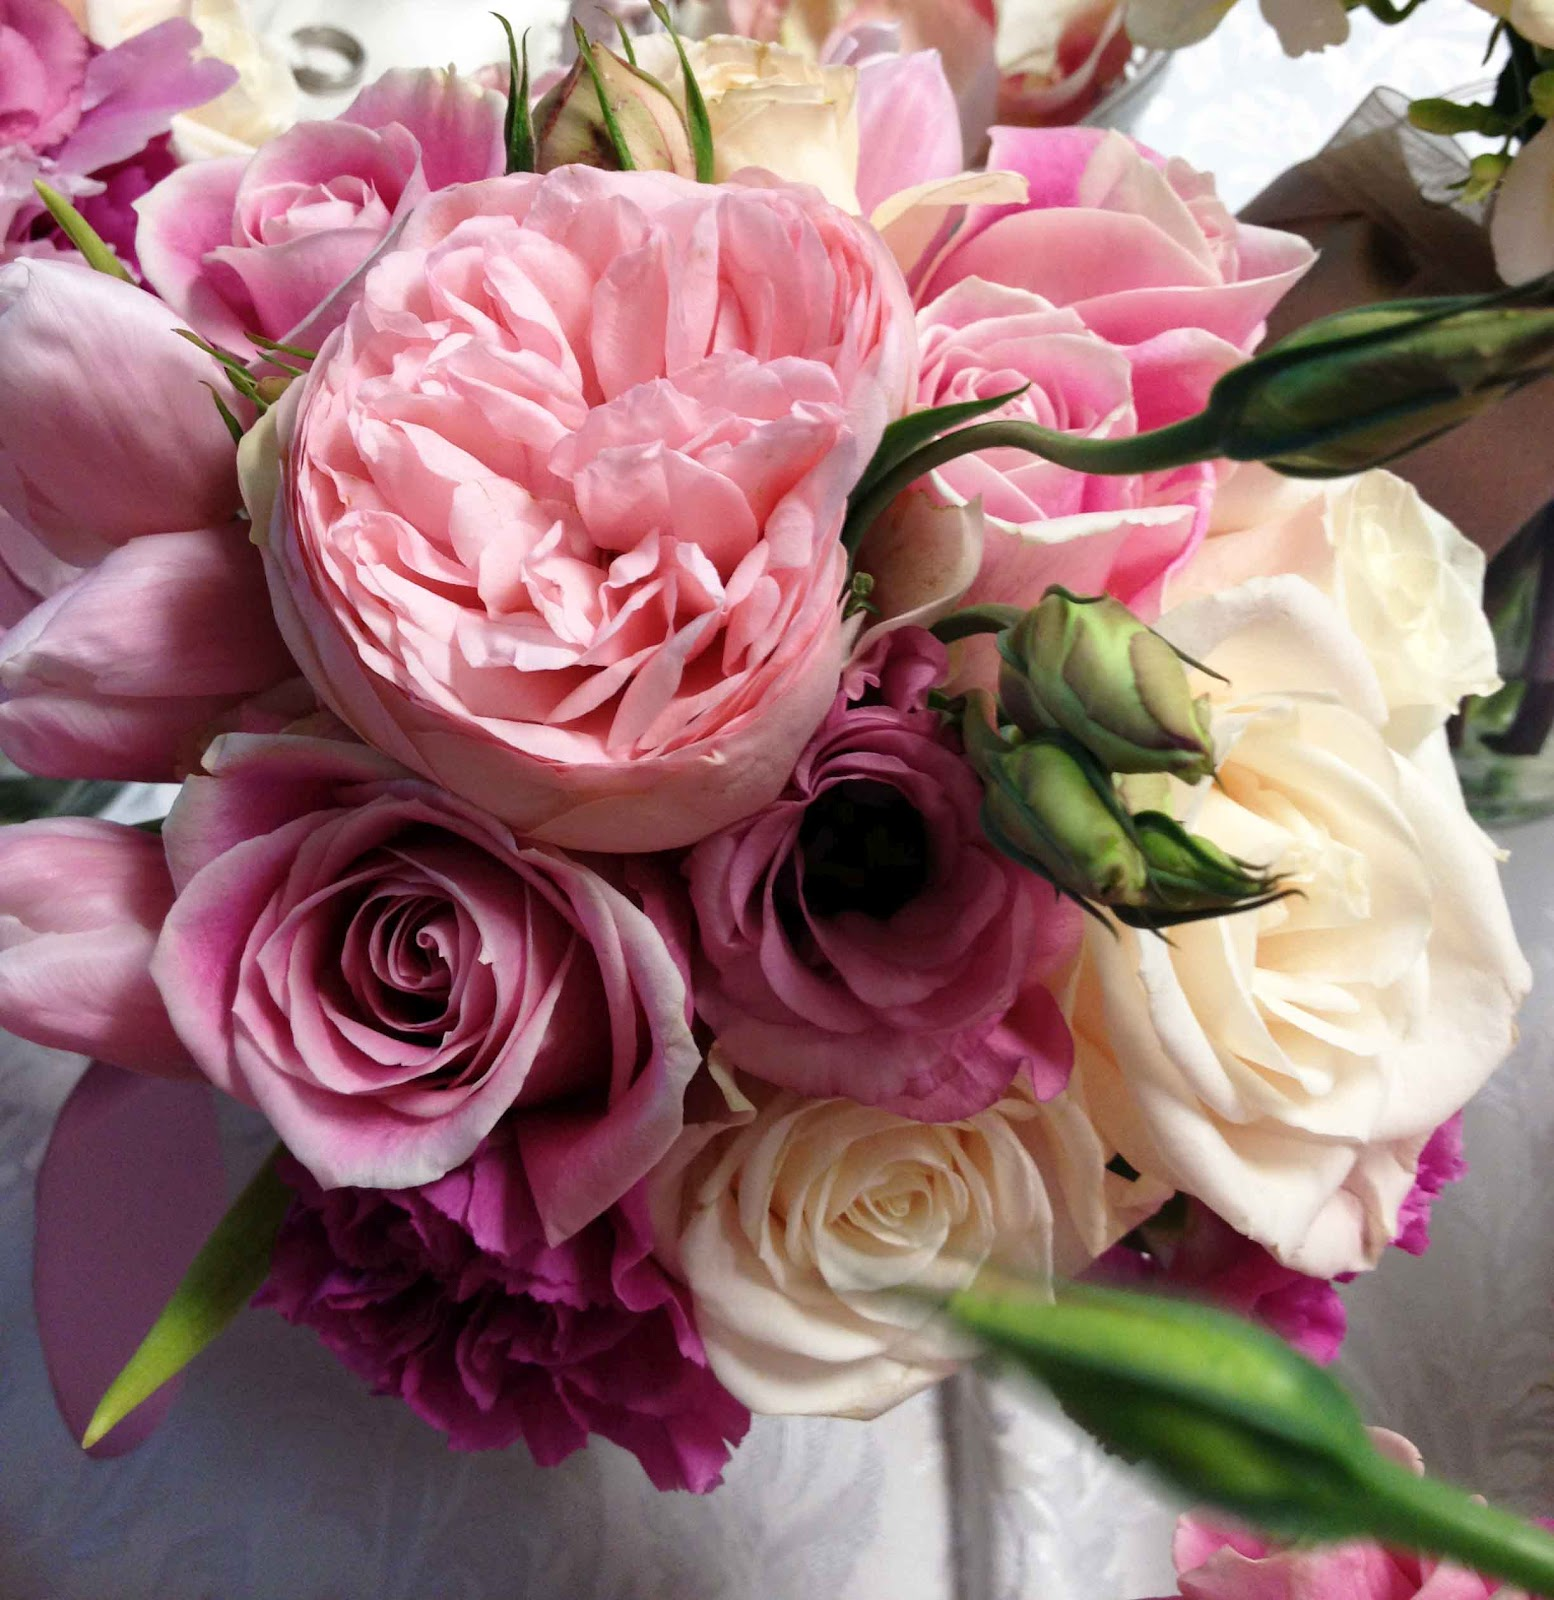 Wedding Bouquets With Lisianthus : Bridal bouquet roses and lisianthus weddings bouquets for brides